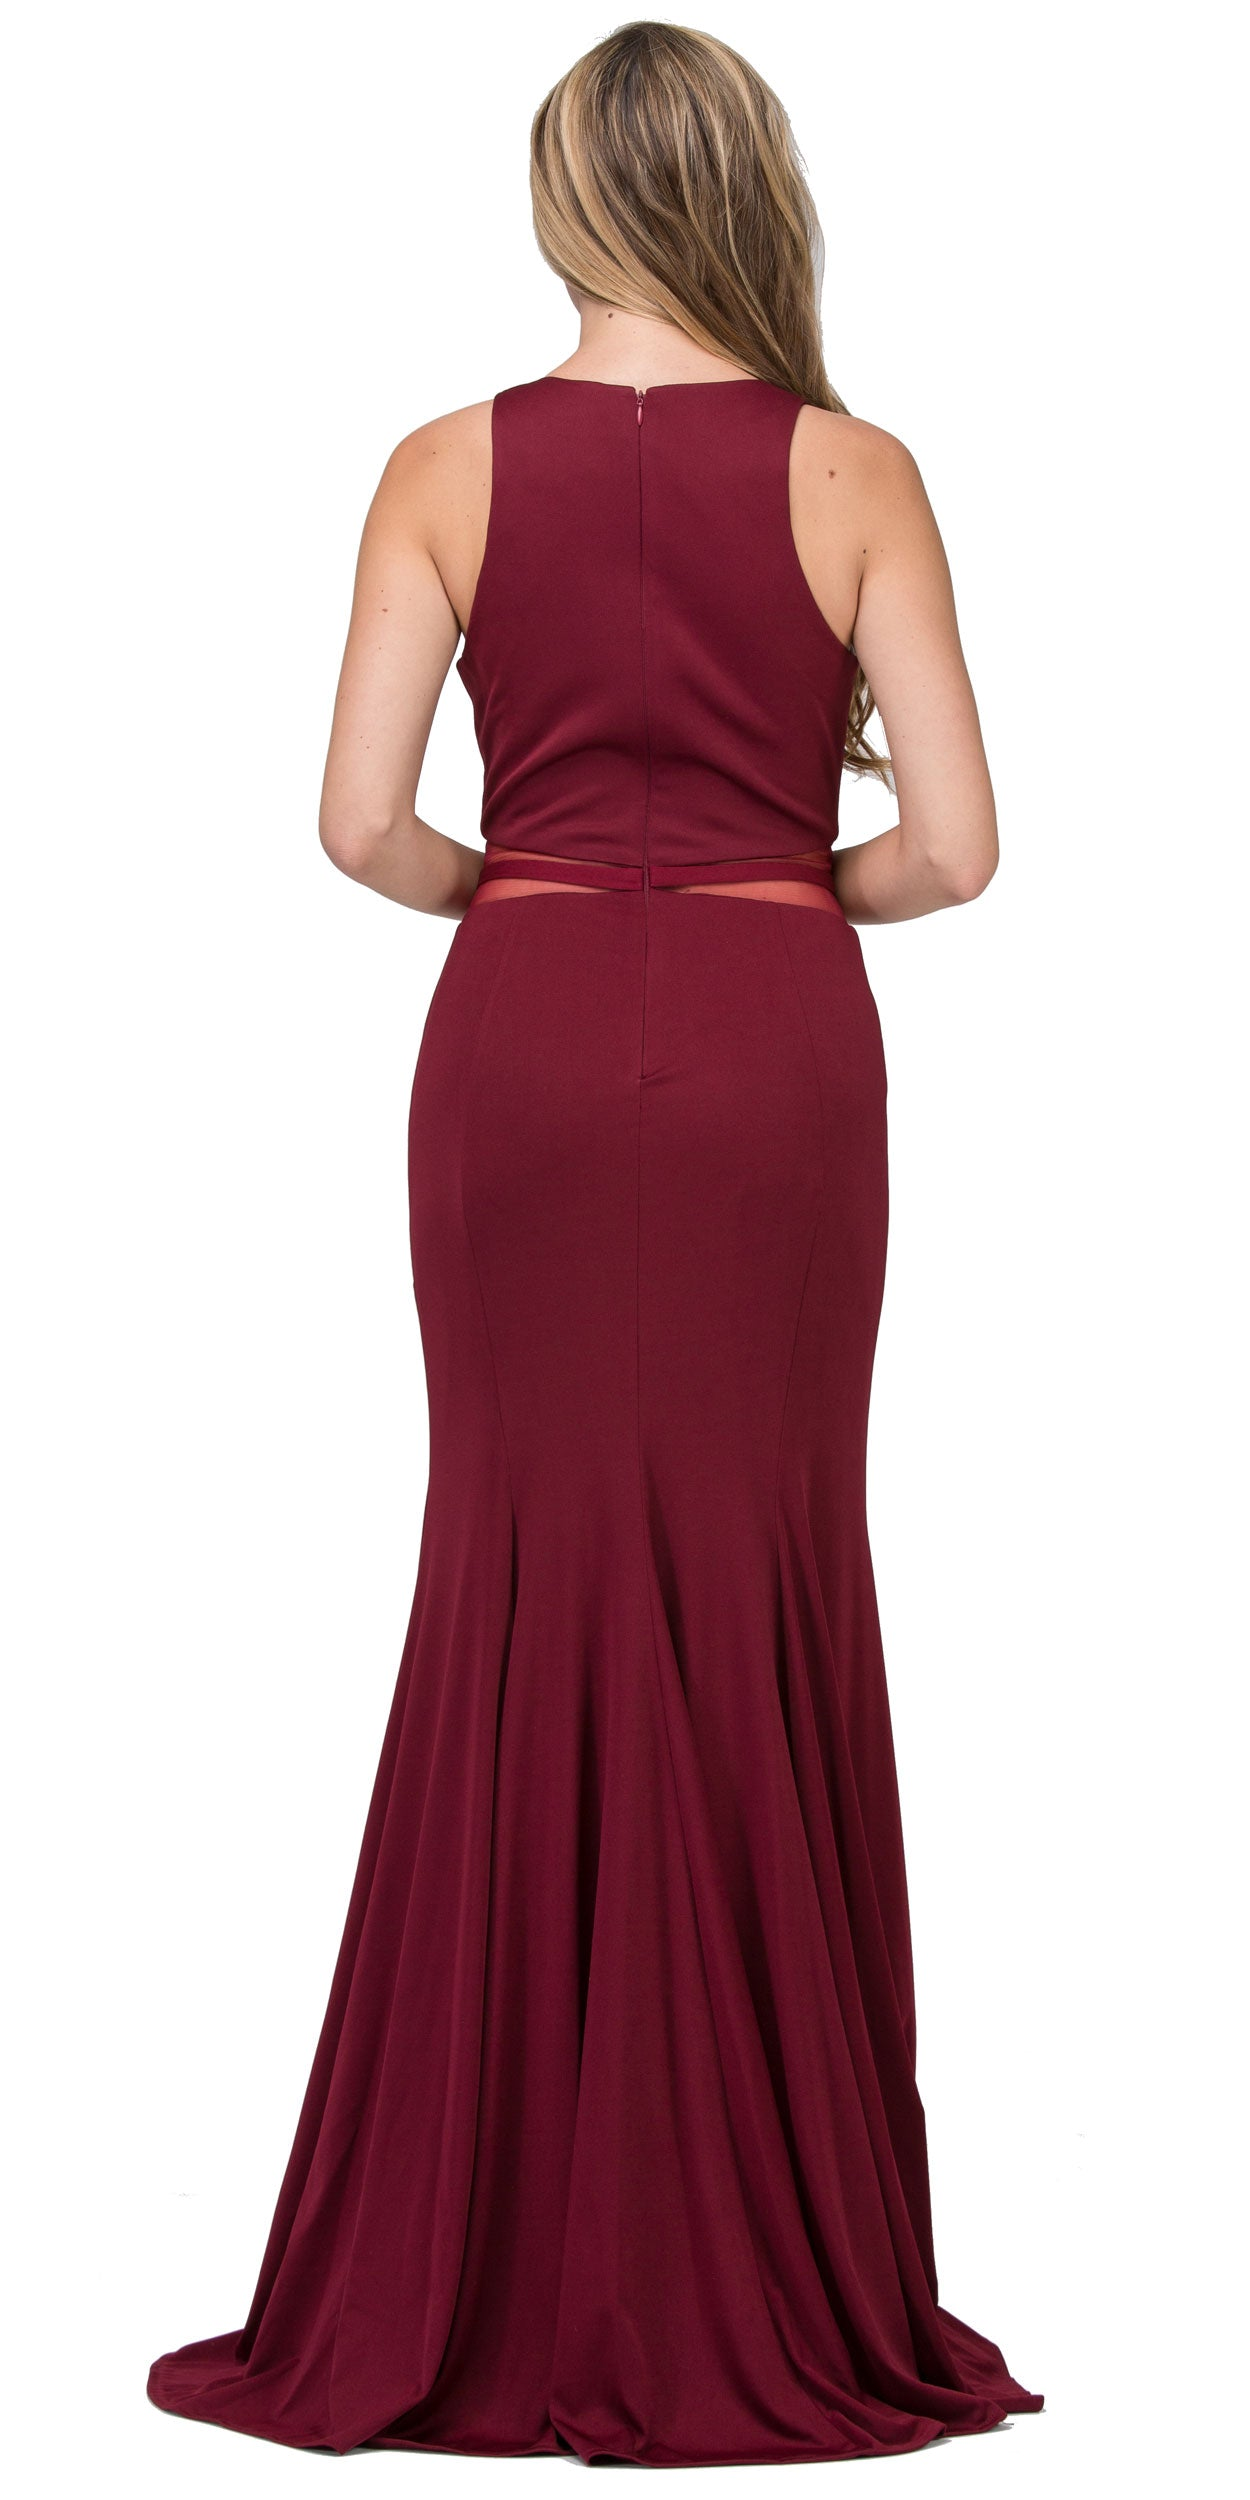 Back image of High Neck Color Block Mesh Insert Long Formal Evening Dress